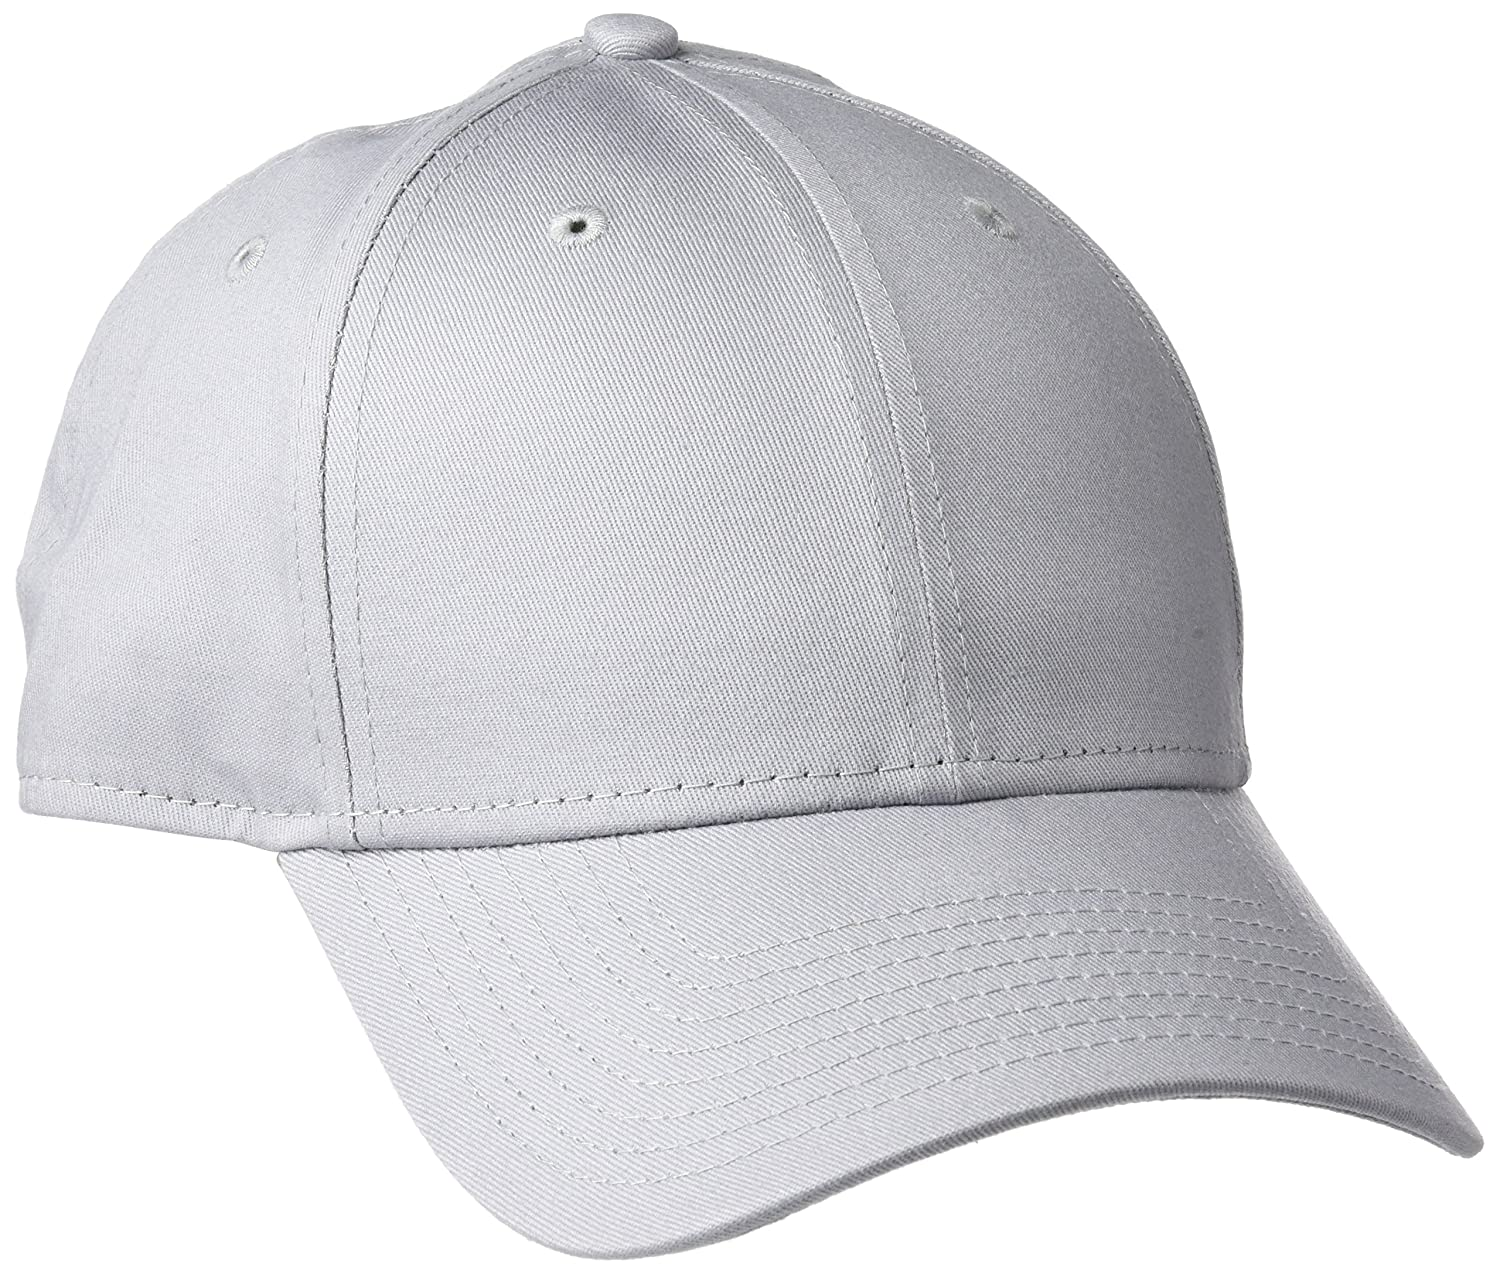 New Era Women s Basic 9Forty Cap One Size Grey at Amazon Men s Clothing  store  ca13ca811b38